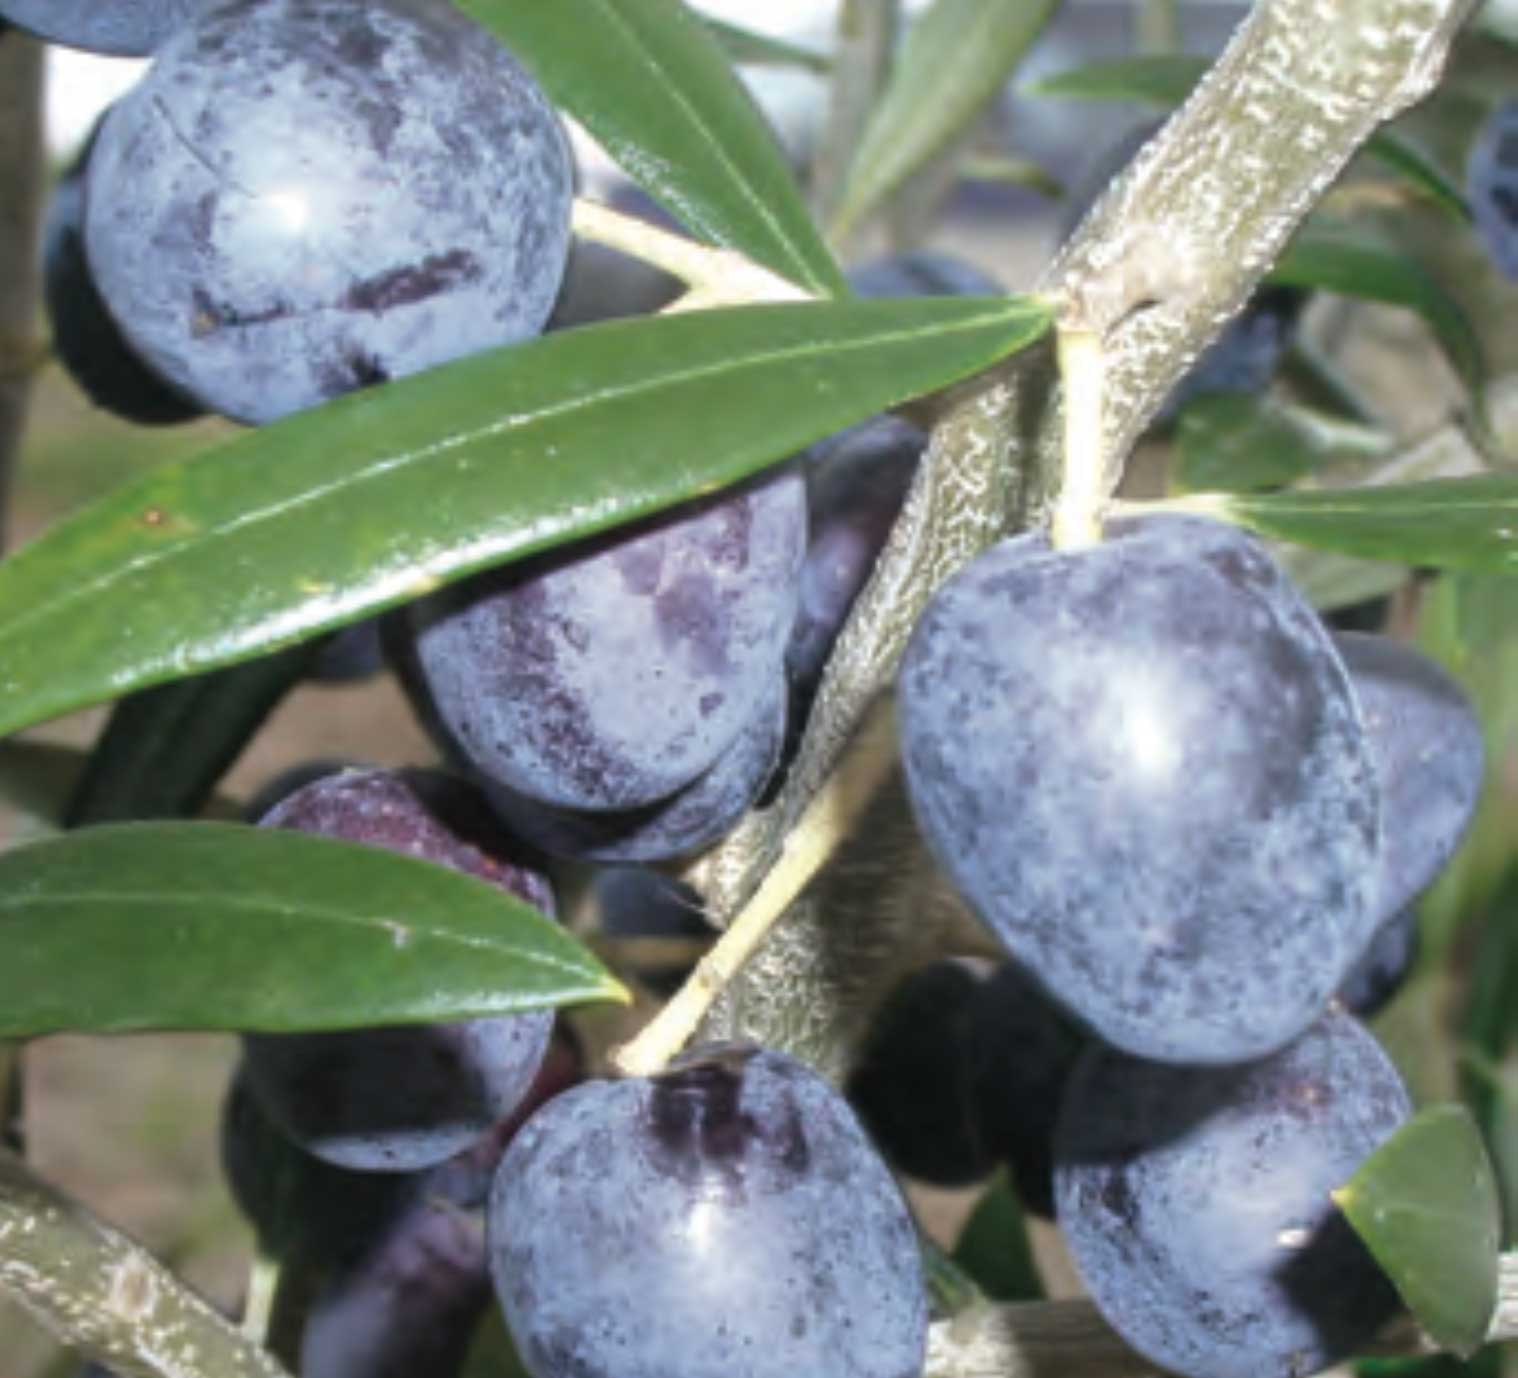 Disease resistance and adaptability of olive cultivars